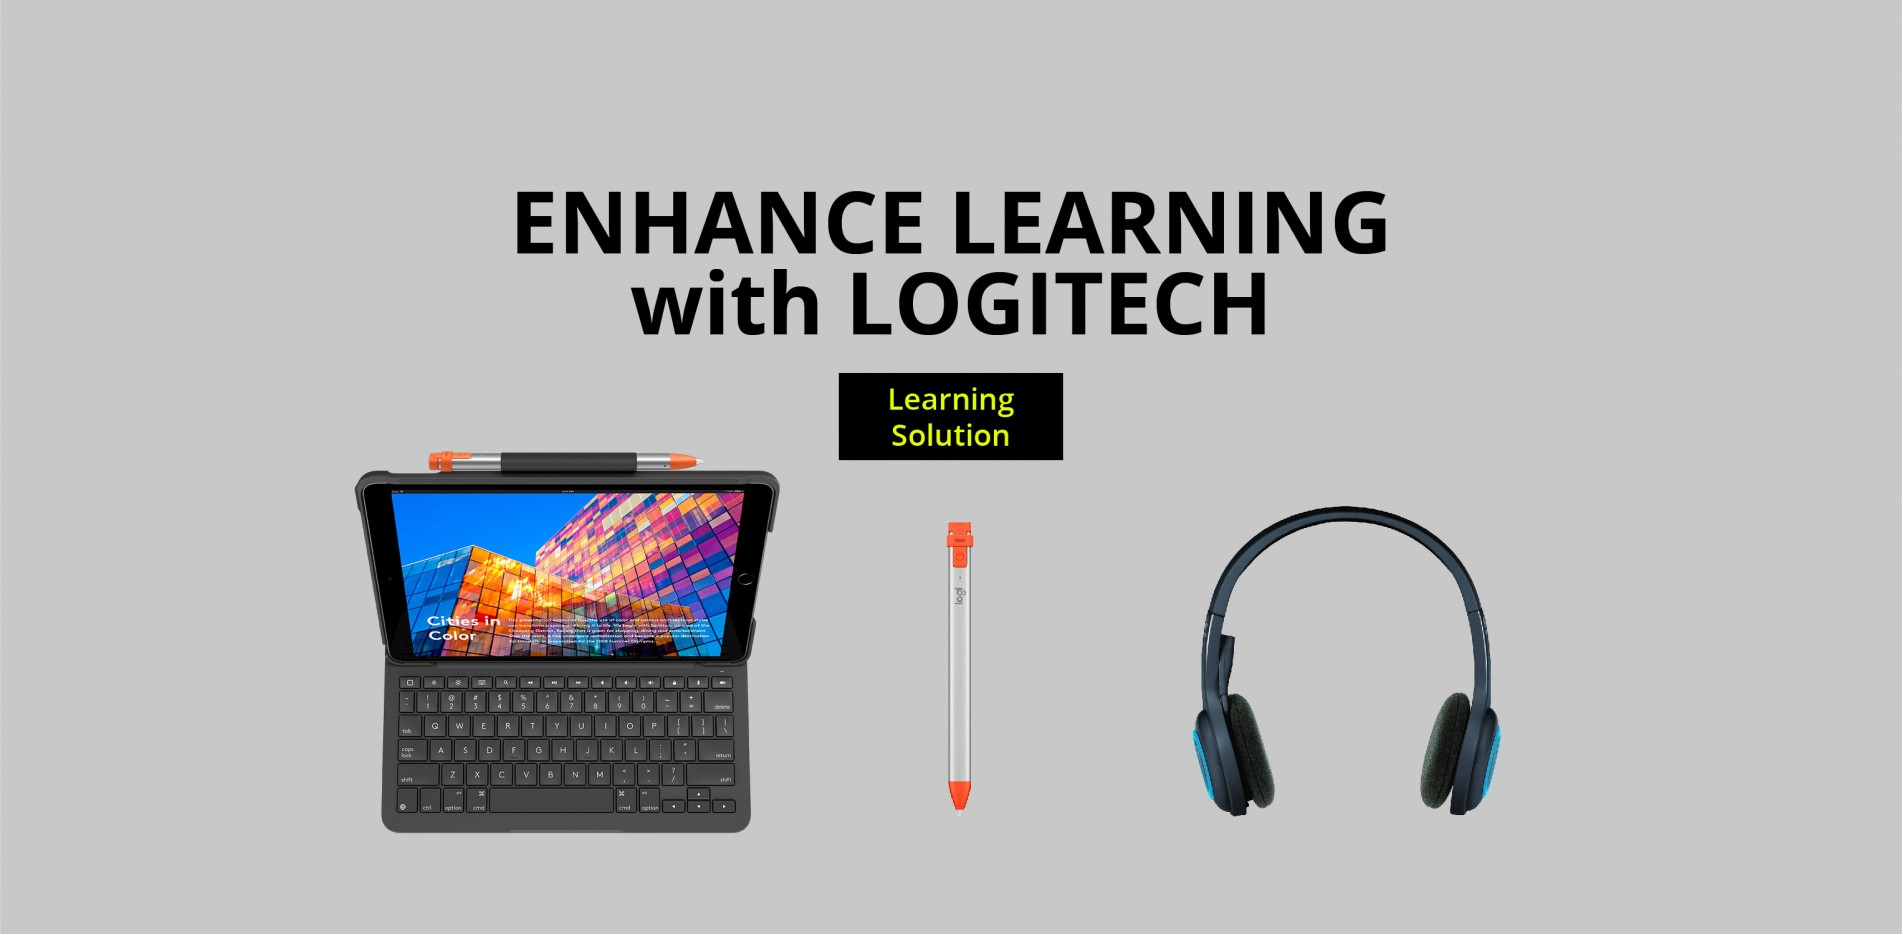 Logitech Education Program